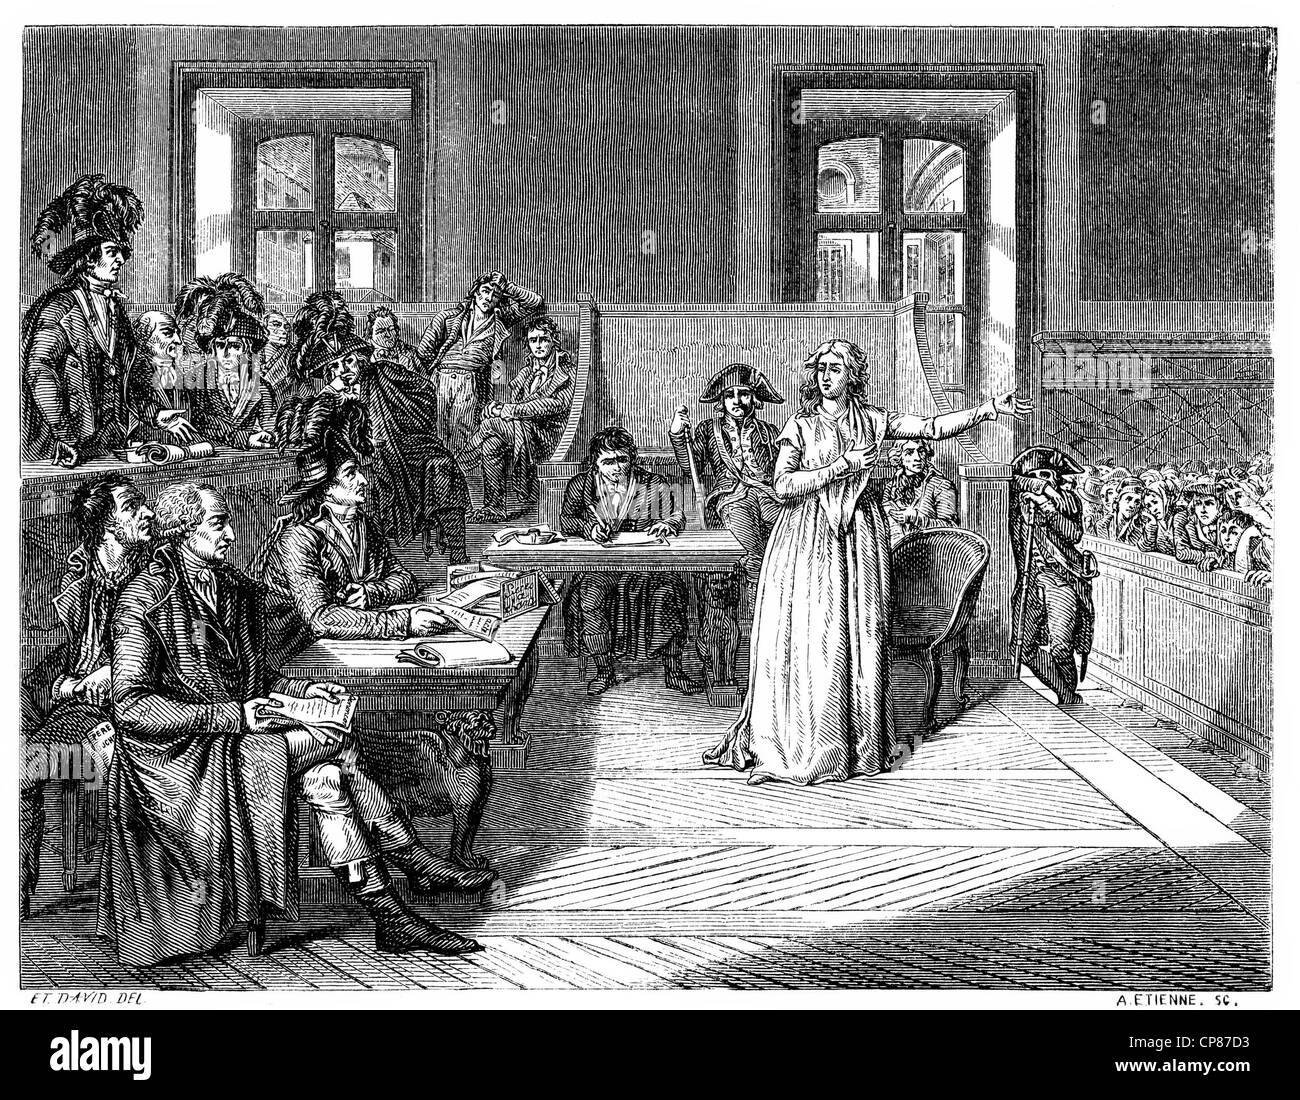 Marie Antoinette or Maria Antonia Josepha Johanna, 1755 - 1793, Queen of France, on trial, French Revolution, historical - Stock Image